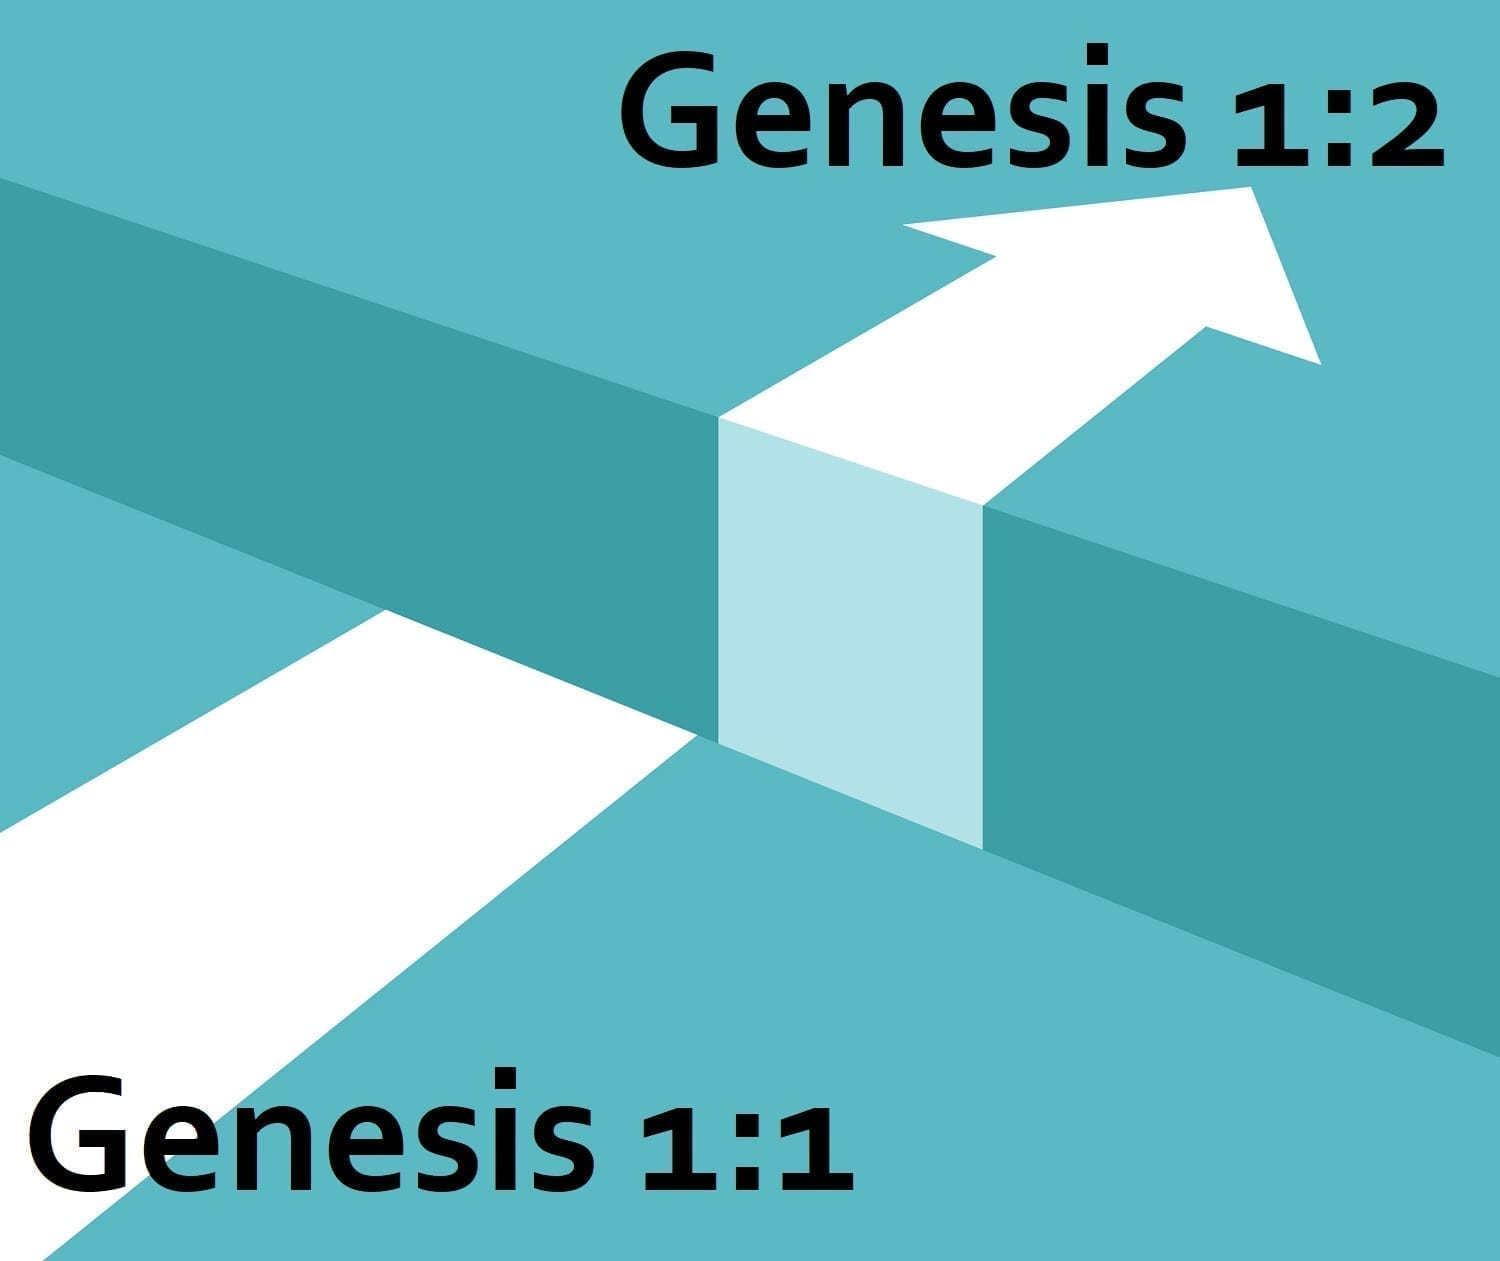 Genesis 1:1-1:2 with Gap Theory, adapted from: ID 136019795 © Vasilyrosca | Dreamstime.com